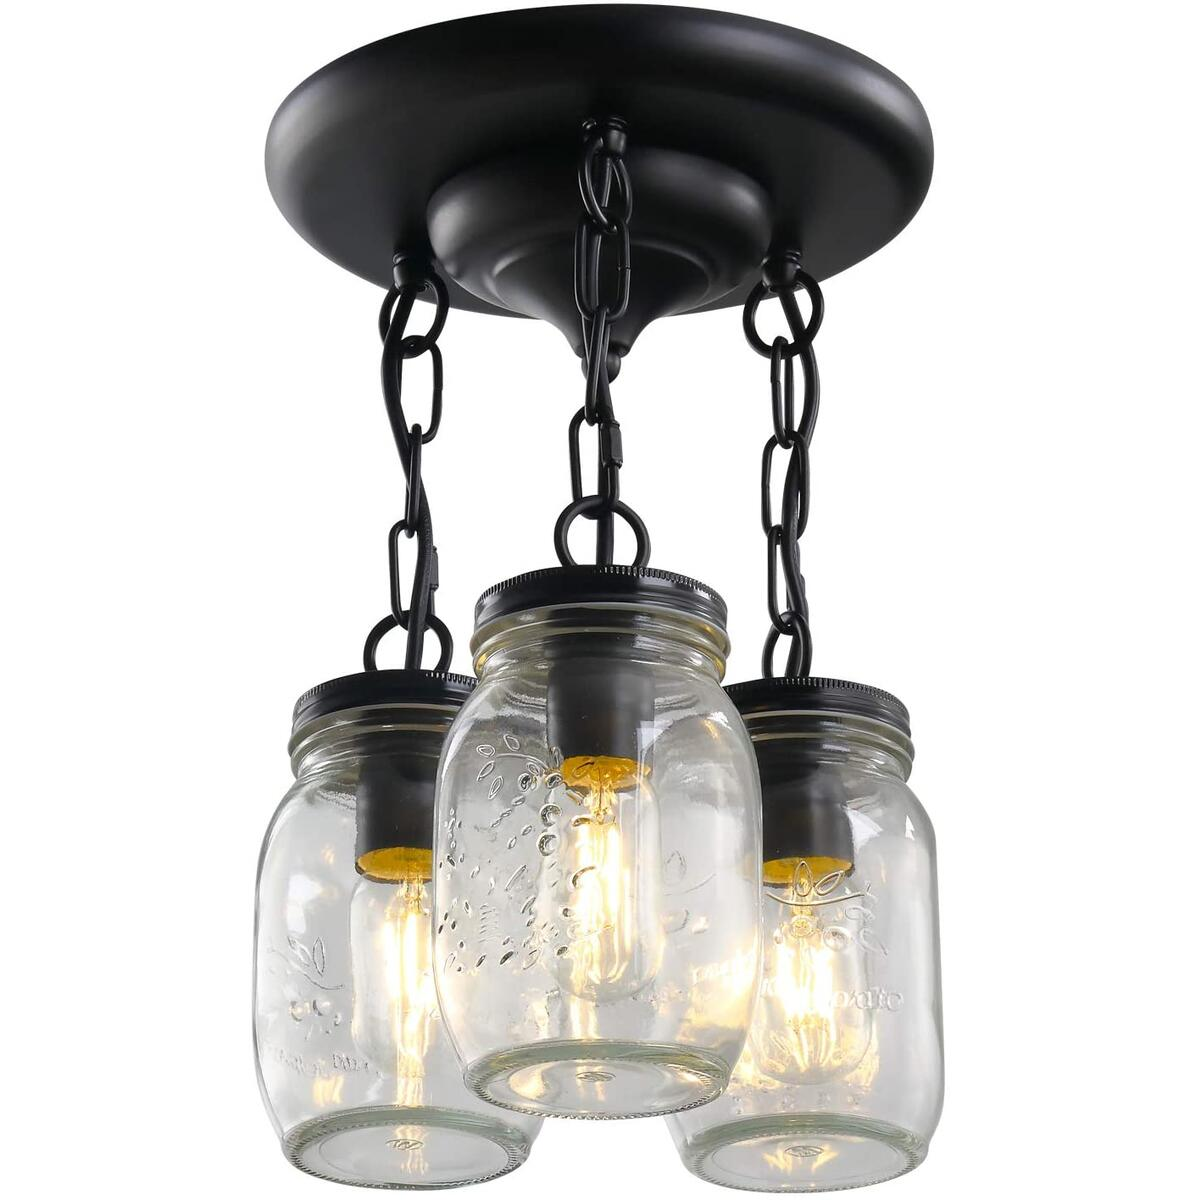 3-Light Mason Jar Light Fixtures for Kitchen, Glass Dining Room Lighting Fixtures Hanging Pandent Light Rustic Chandelier, Farmhouse Ceiling Light for Hallway Entryway